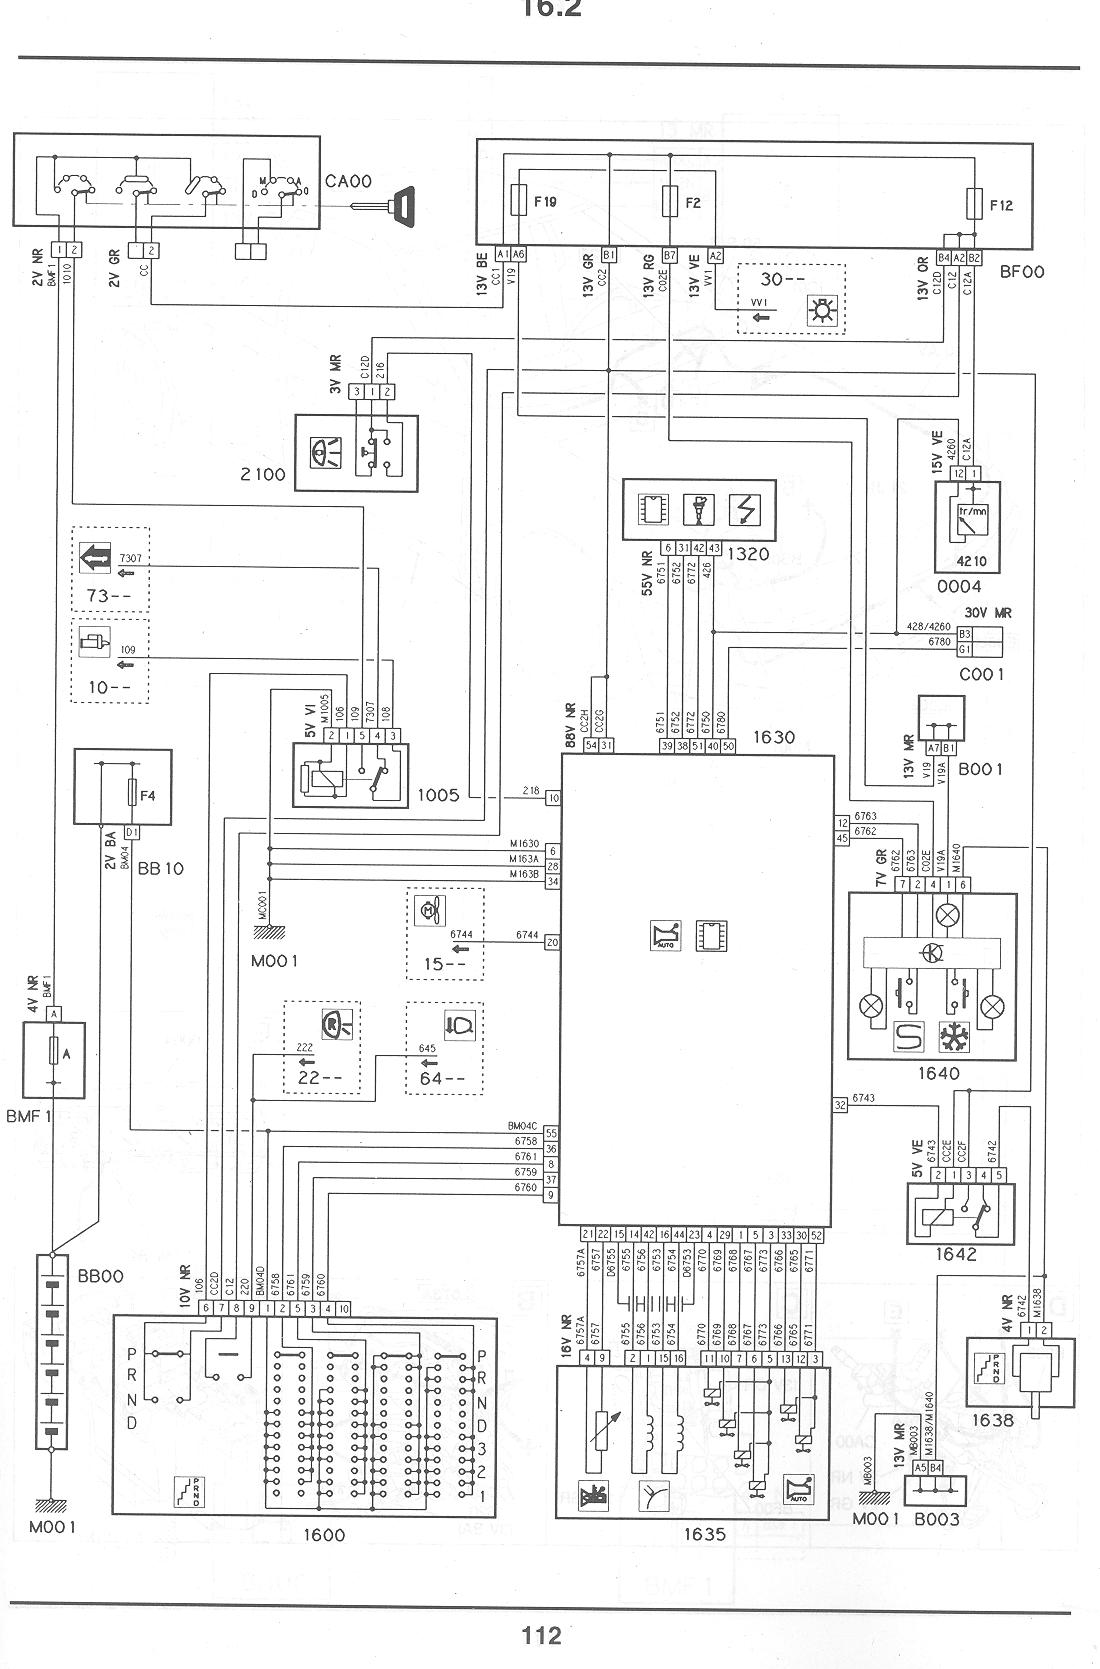 [DIAGRAM] Wiring Diagram De Repara O Citroen C3 FULL